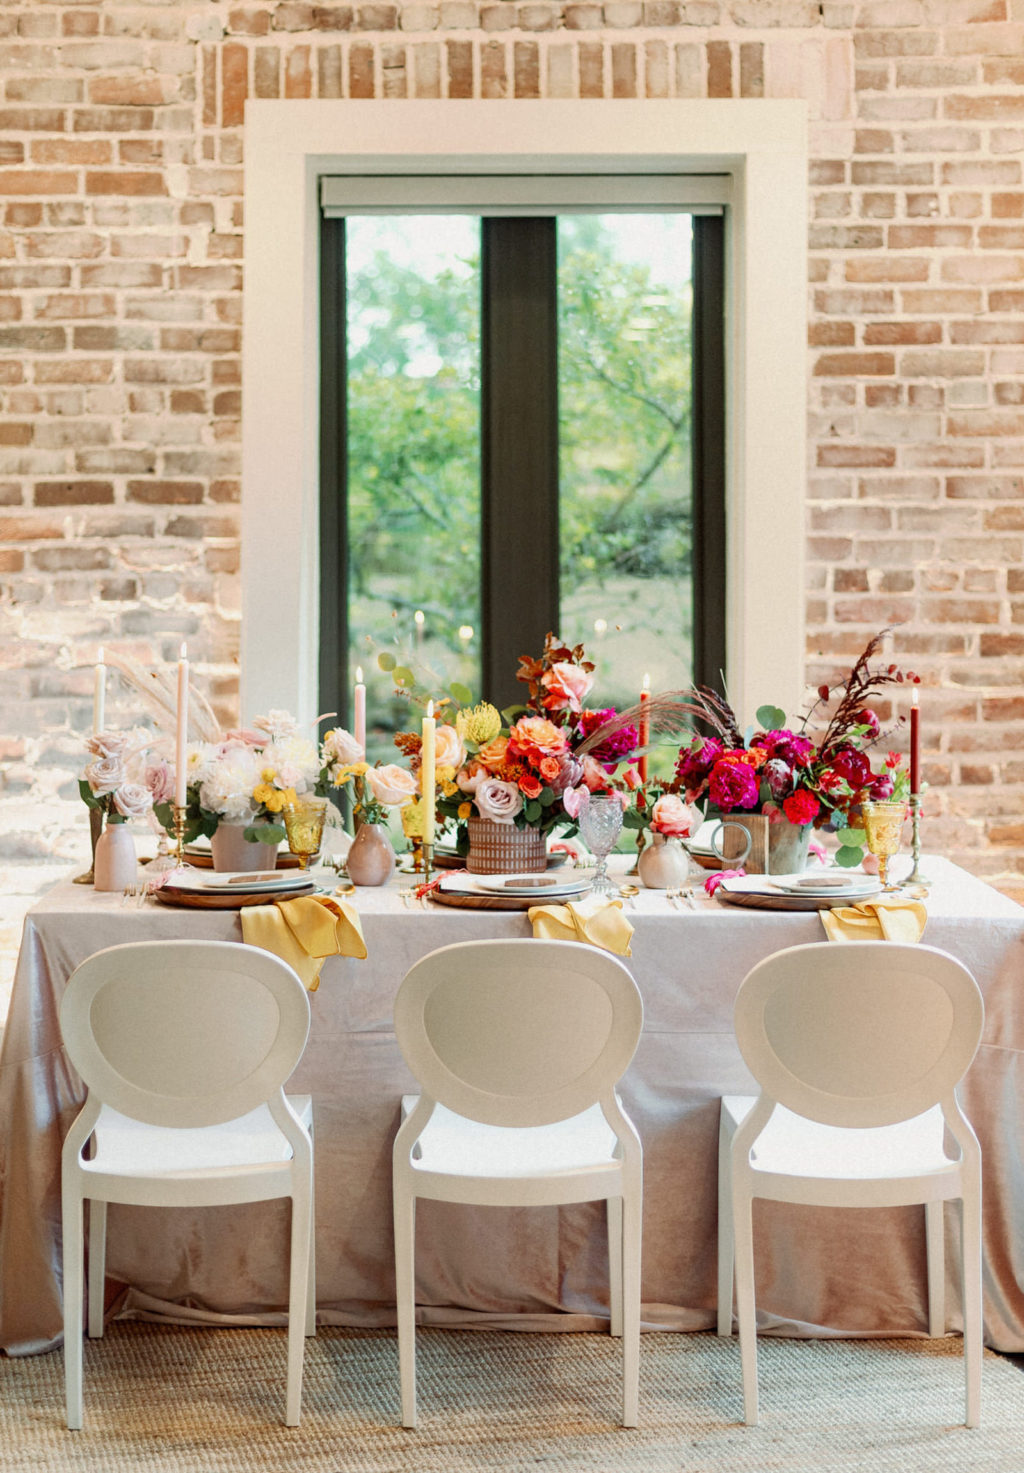 Whimsical and Colorful Wedding Reception Decor, White Dining Chairs, Yellow, Red and White Candlesticks, Colorful Flower Low Centerpieces   St. Pete Modern Industrial Wedding Venue Red Mesa Events   Tampa Wedding Photographer Dewitt for Love   Linen Rentals Kate Ryan Event Rentals